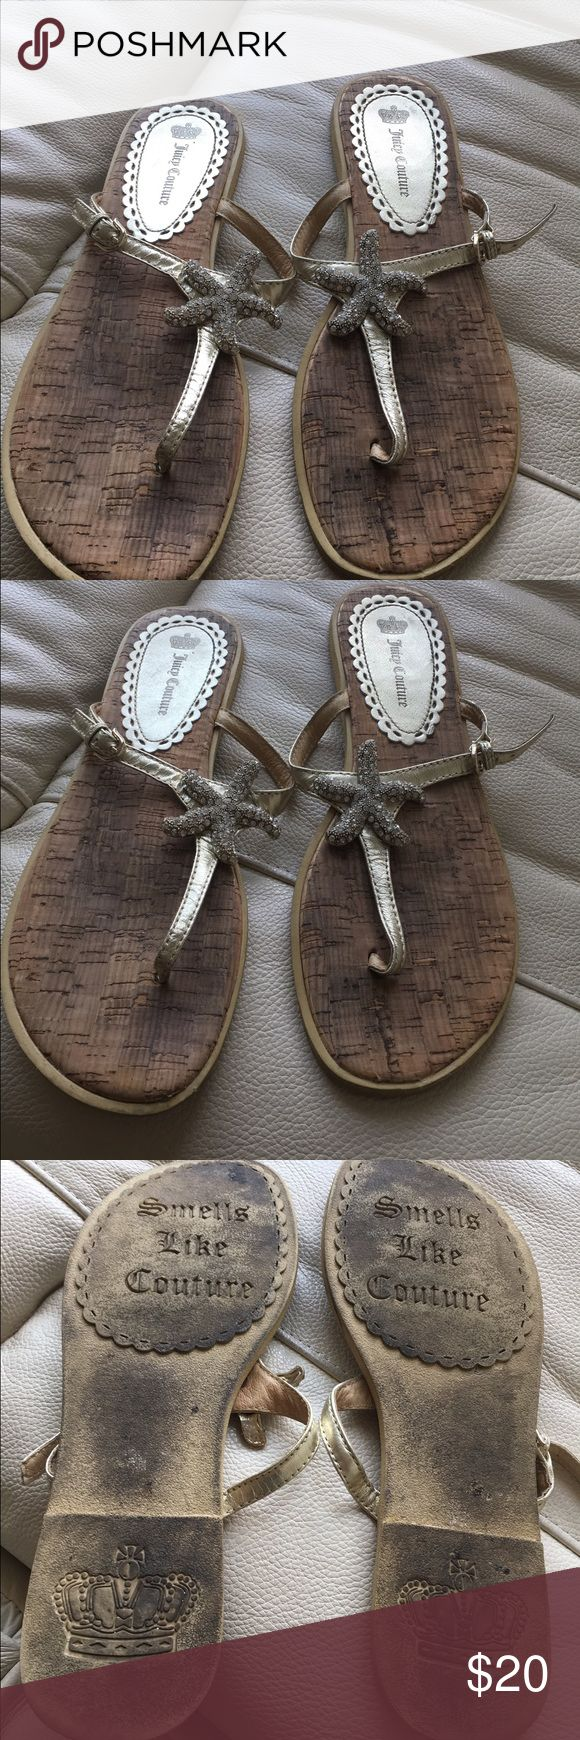 Juicy Couture Starfish Sandals Juicy Couture gold starfish sandals! Juicy Couture Shoes Sandals